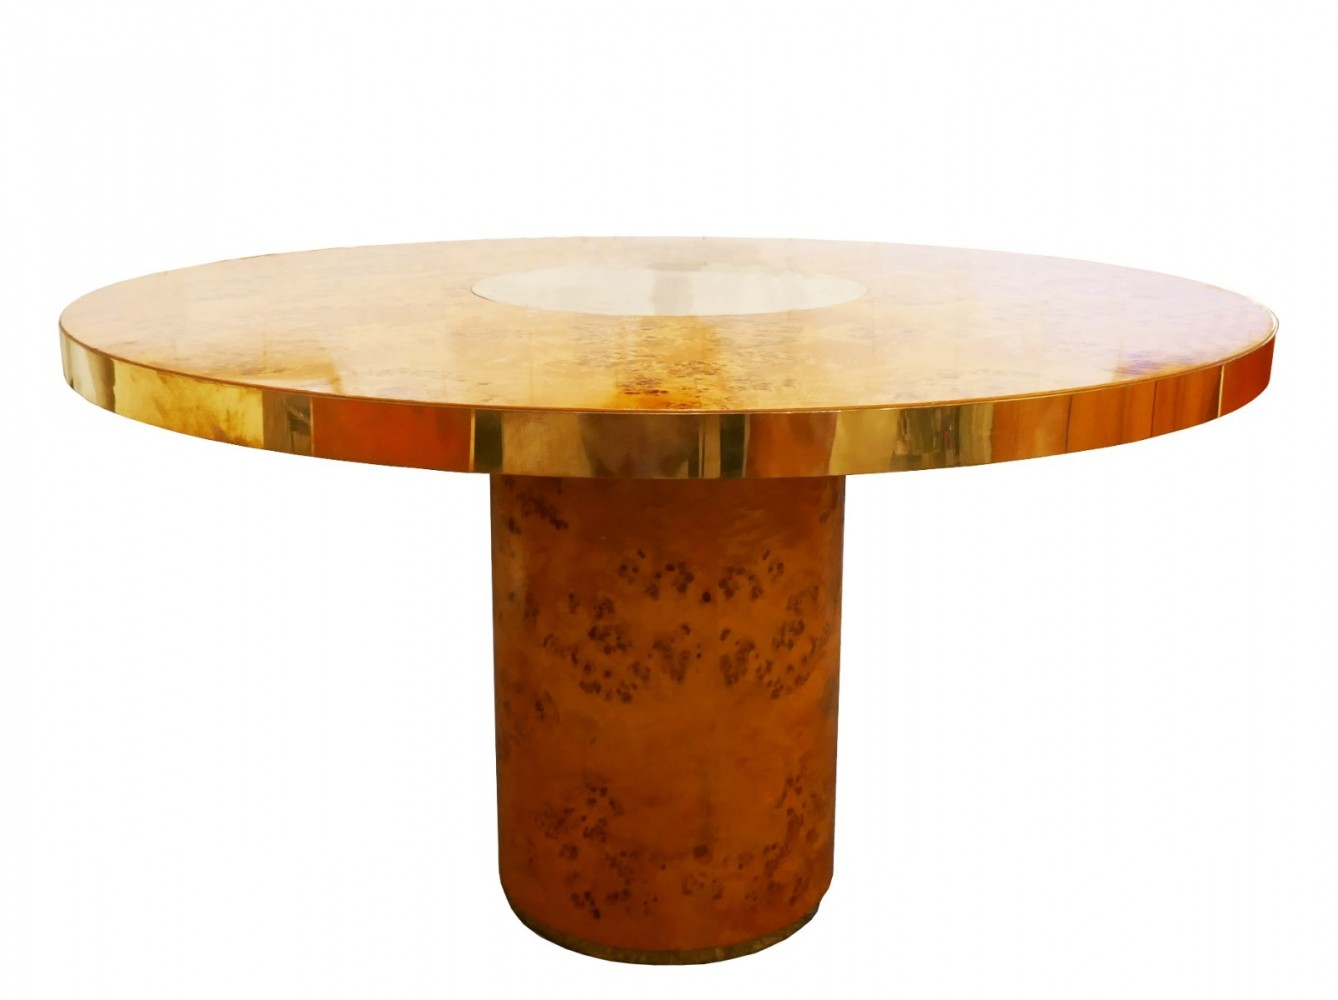 Round Dining Table In Brass & Burl By Willy Rizzo For Mario Sabot, 1970s